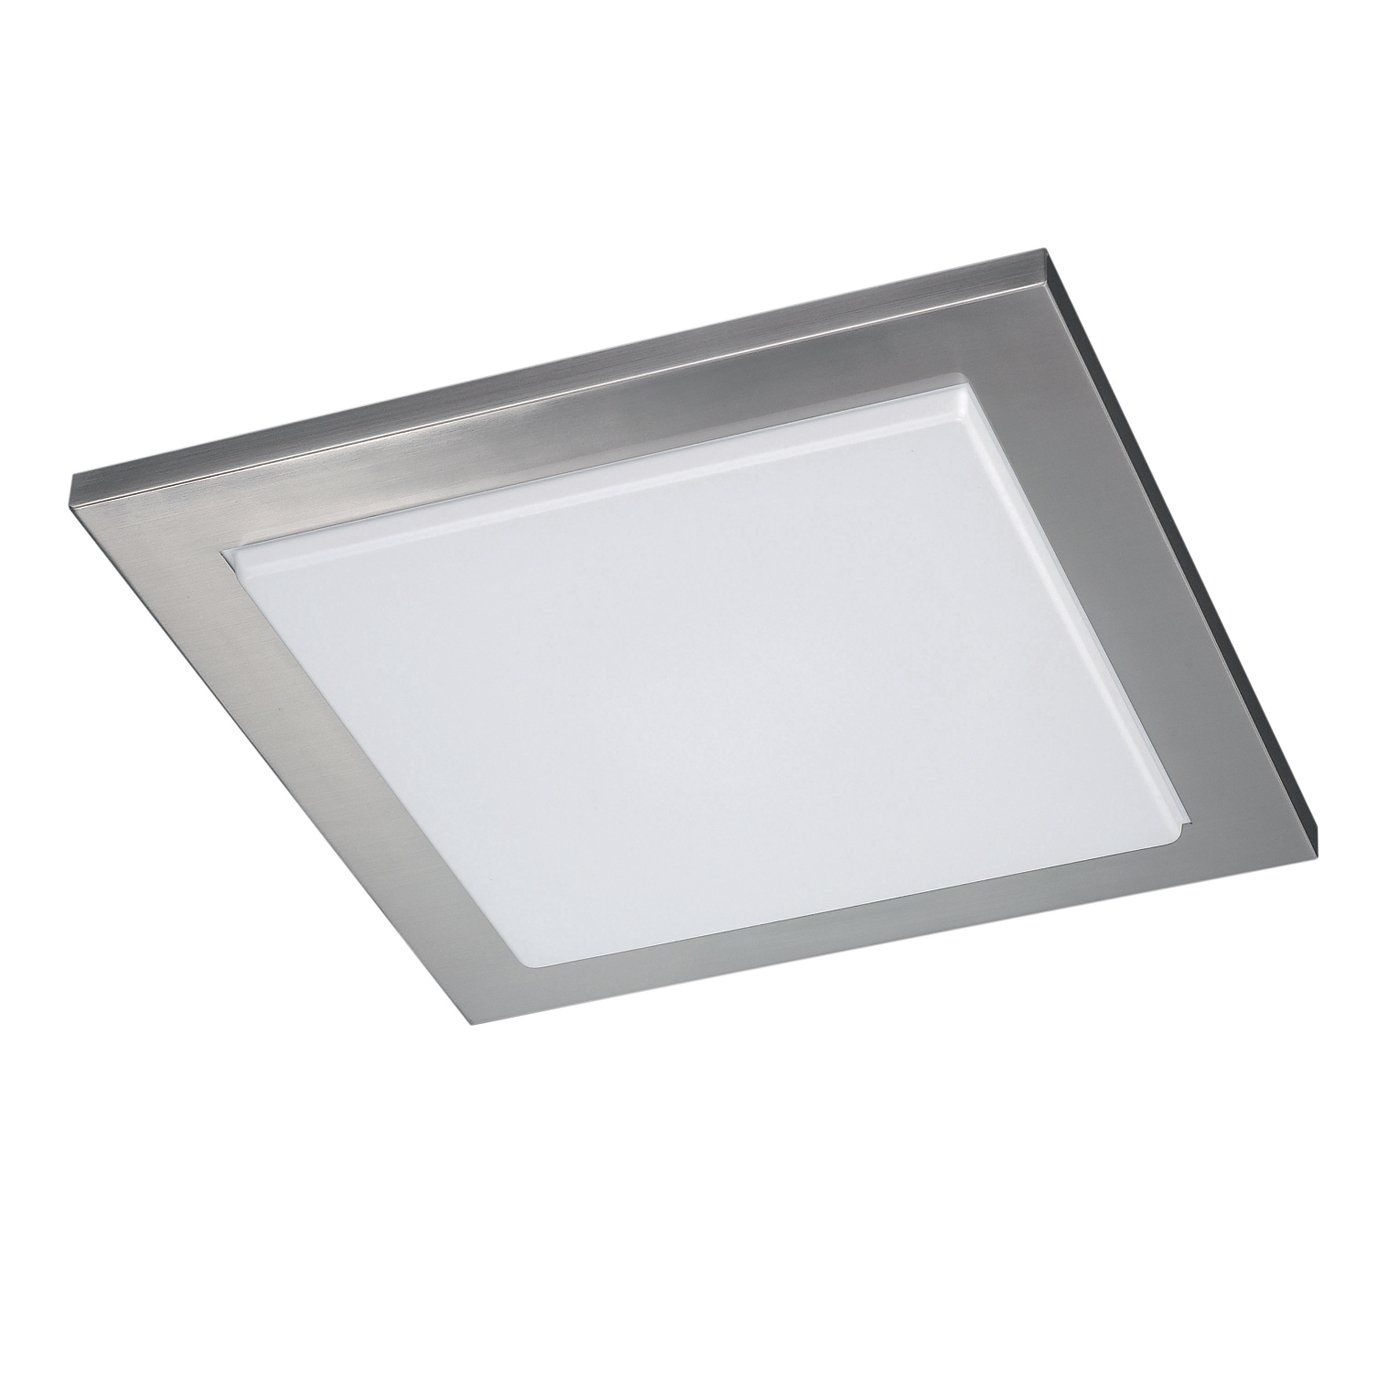 Philips Roomstylers Energy Efficient Square Flush Mount